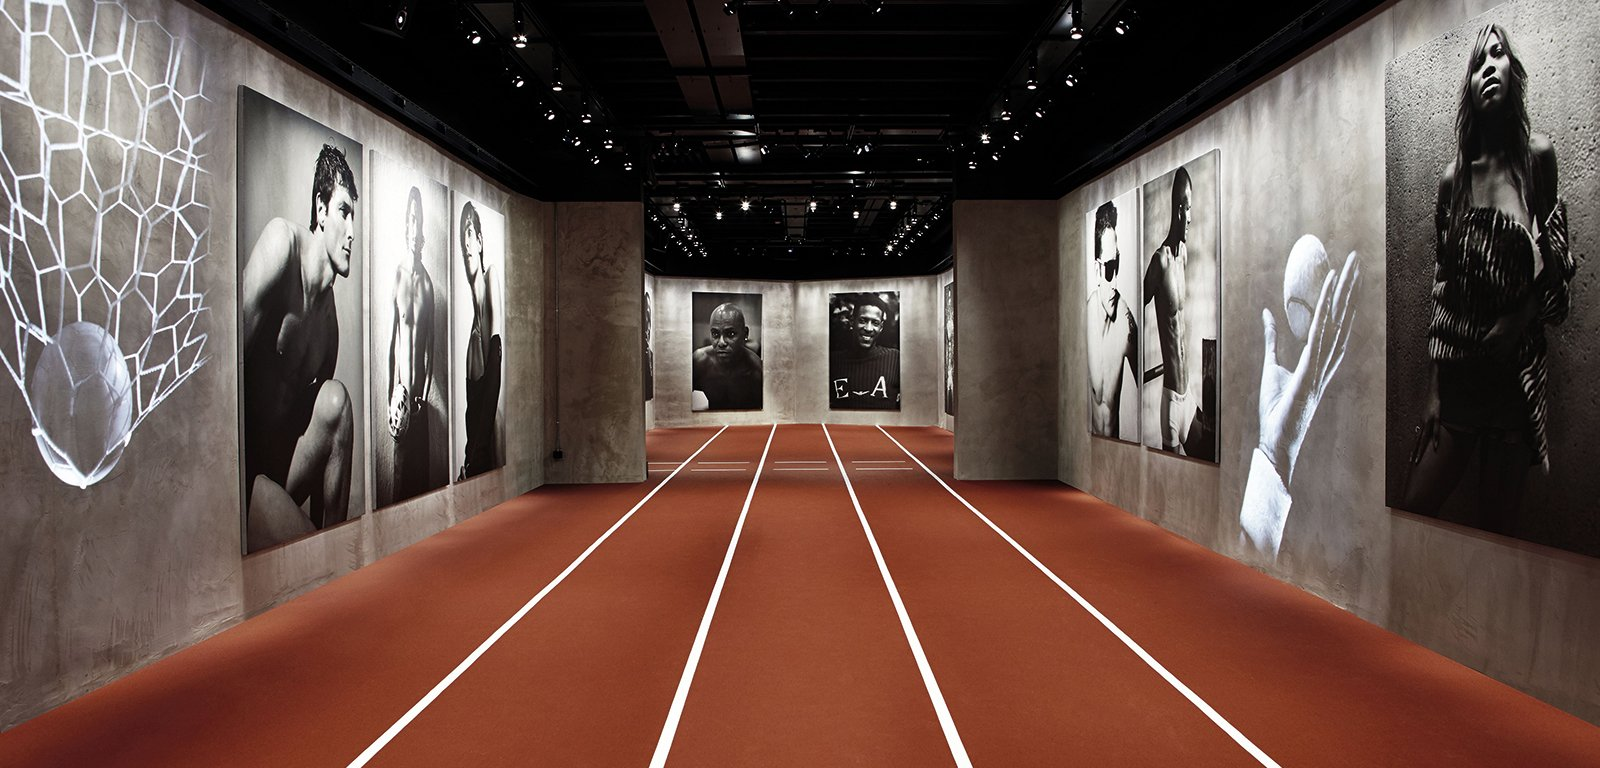 """Emotions of the athletic body"": la exposición de Giorgio Armani en honor a la belleza del cuerpo atlético"